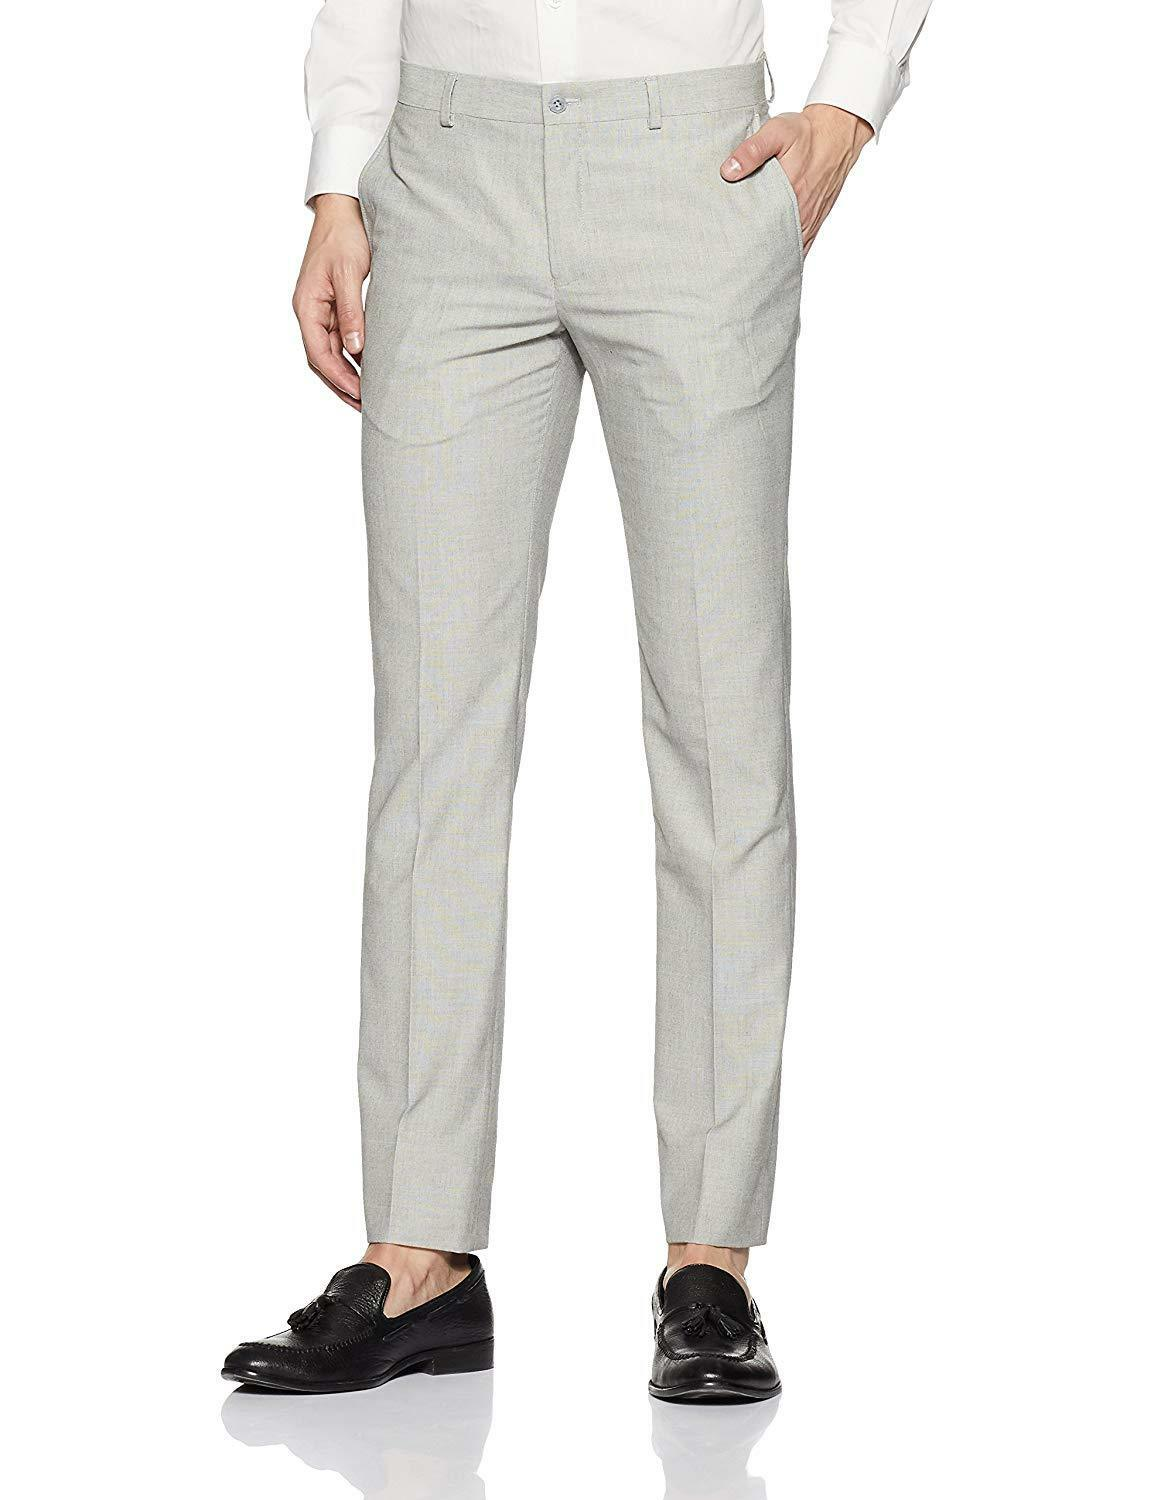 Xs,S,M,L,Xl,2Xl,3Xl-5Xl Pants Business Casual Straight Trousers Formal Suit New